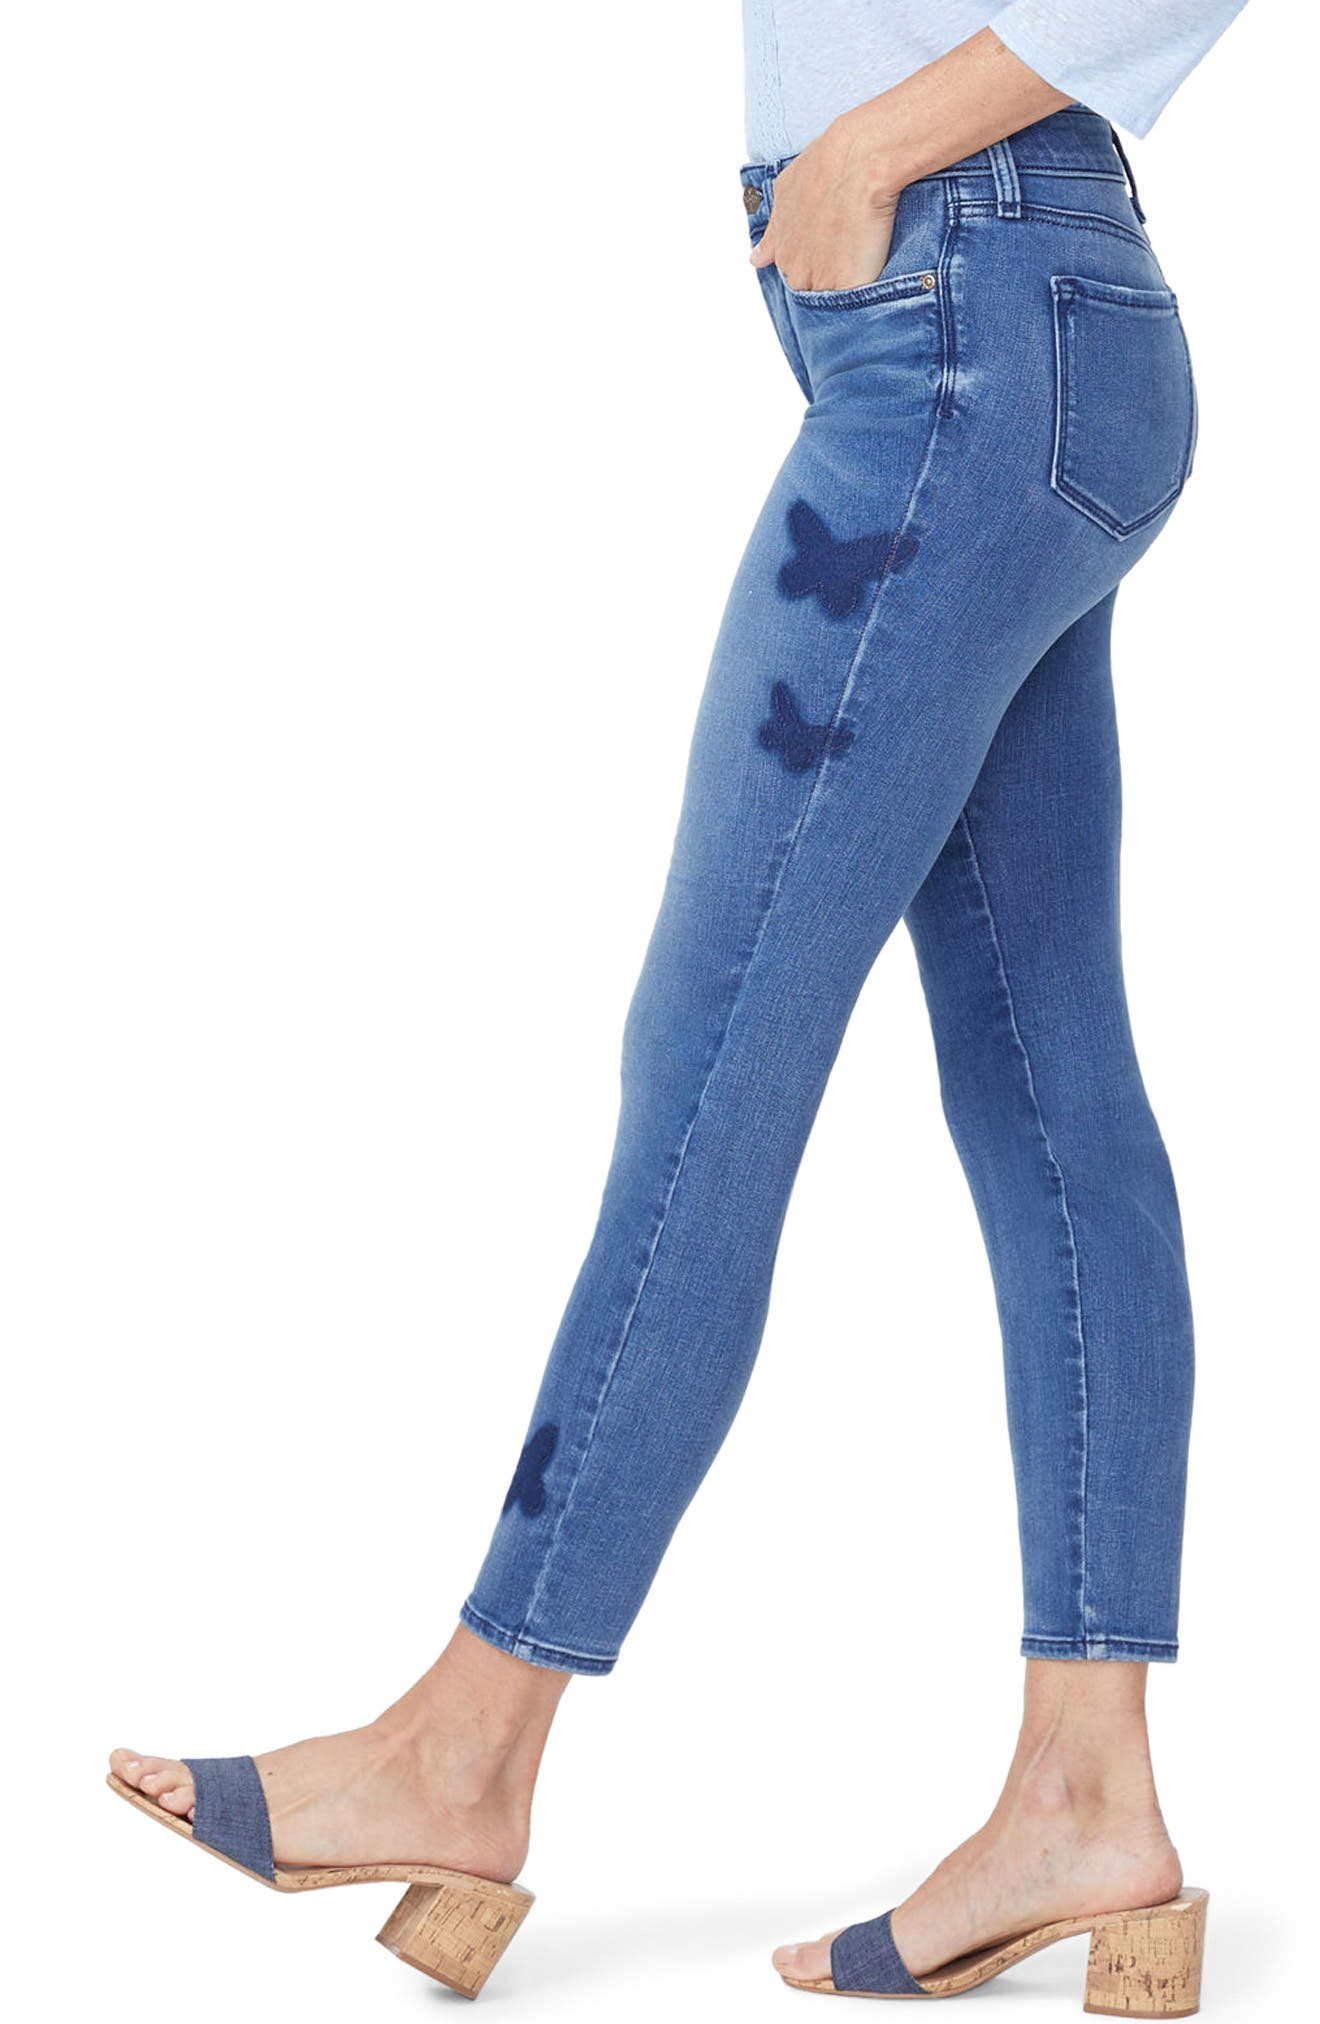 Ami Butterfly Skinny Jeans,                             Alternate thumbnail 3, color,